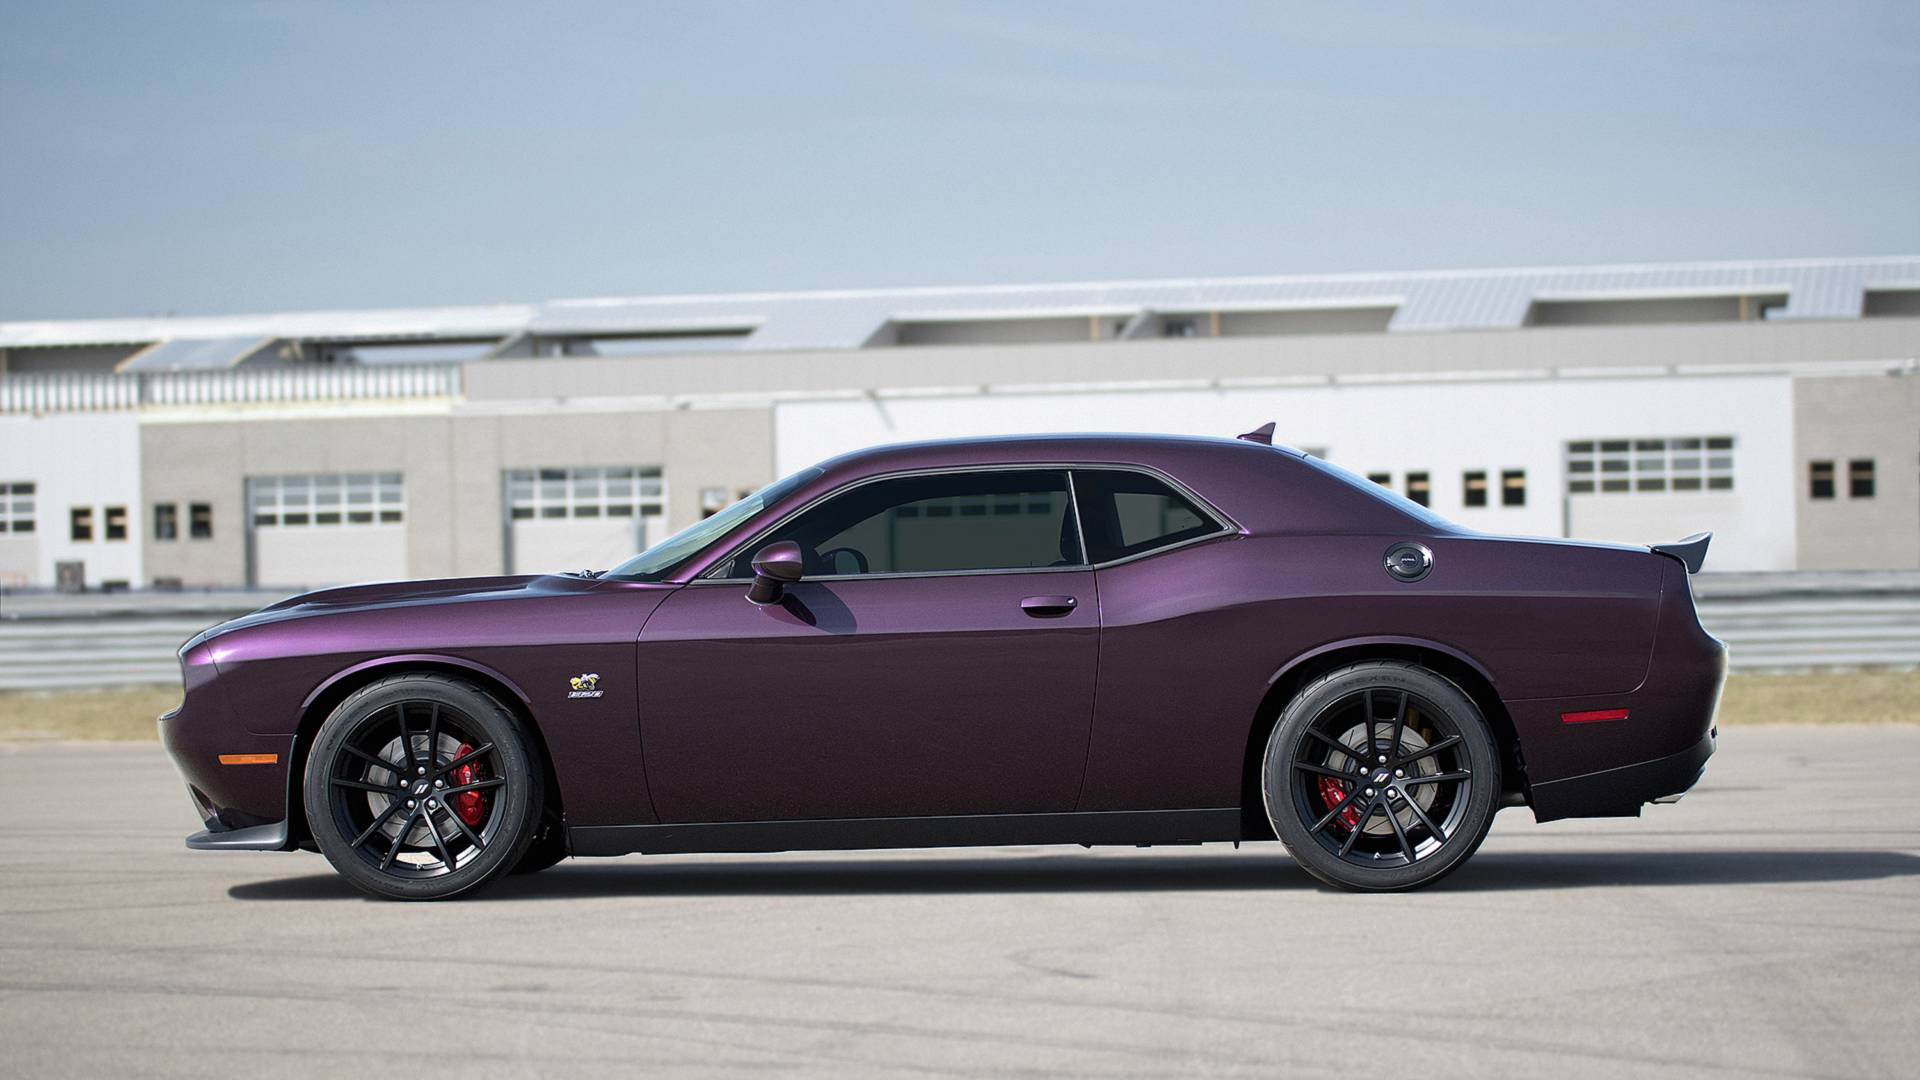 Dodge Challenger R T Scat Pack Possessed By Demon For New 1320 Trim